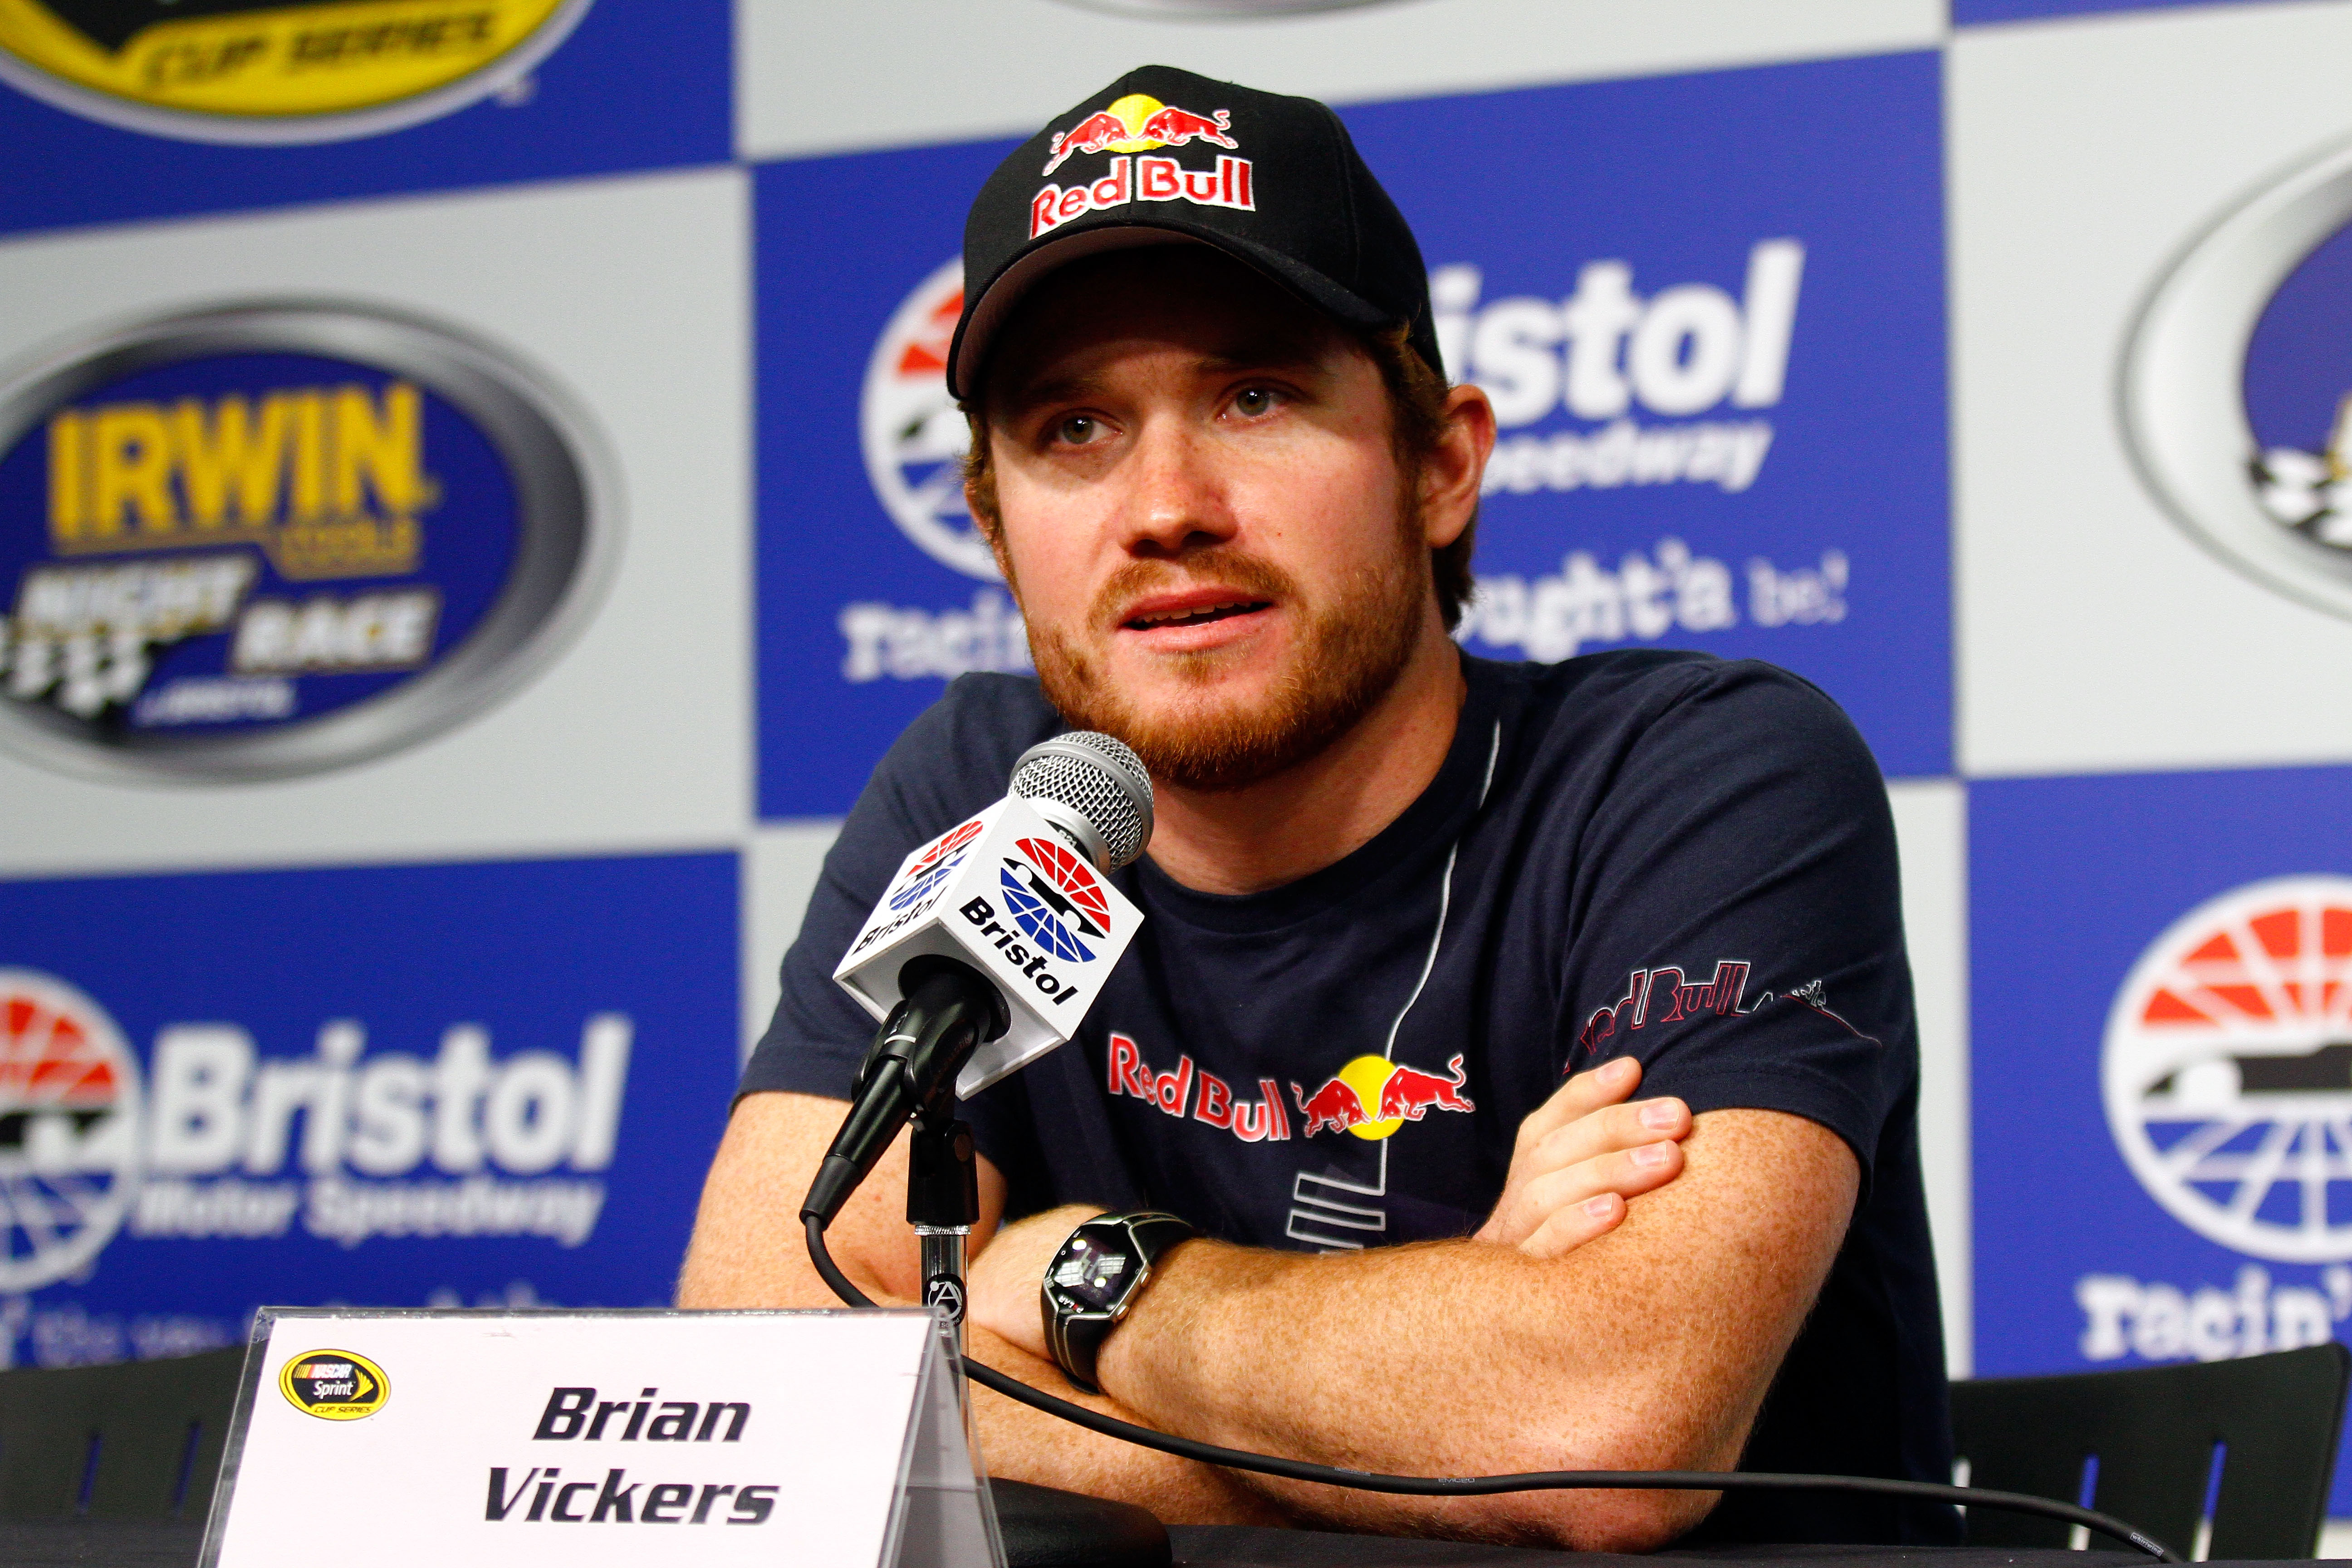 BRISTOL, TN - AUGUST 21:  NASCAR driver Brian Vickers speaks to the media prior to the NASCAR Sprint Cup Series IRWIN Tools Night Race at Bristol Motor Speedway on August 21, 2010 in Bristol, Tennessee.  (Photo by Jason Smith/Getty Images)